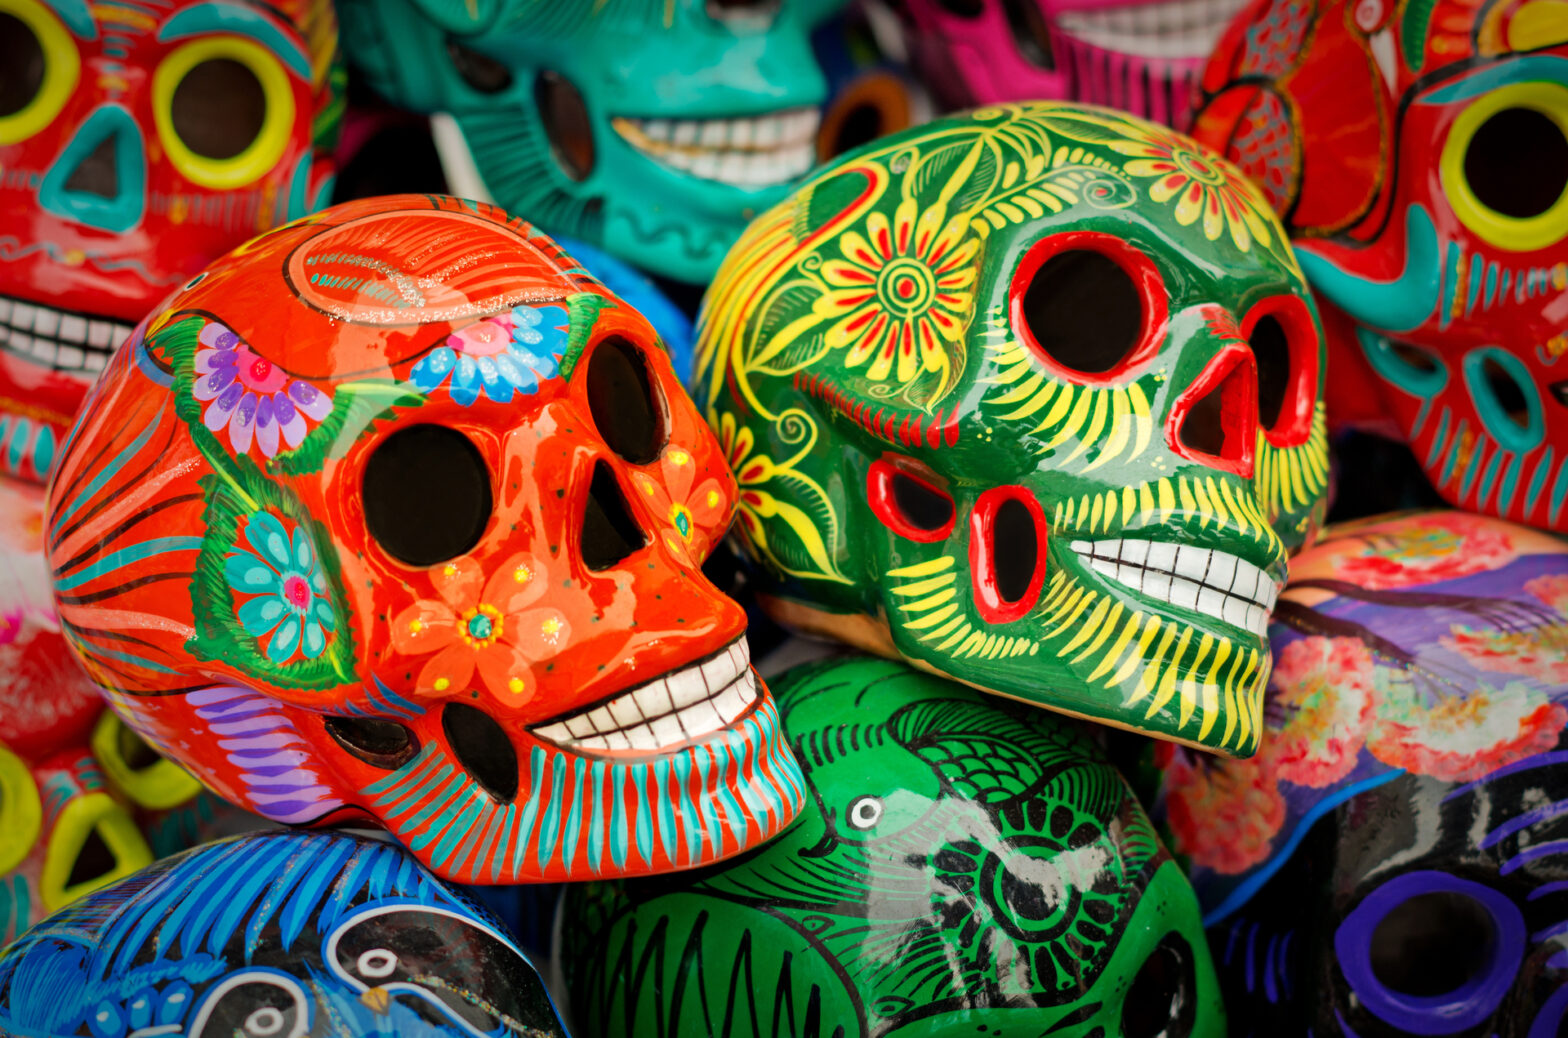 Death in Culture: Global Views on End-of-Life